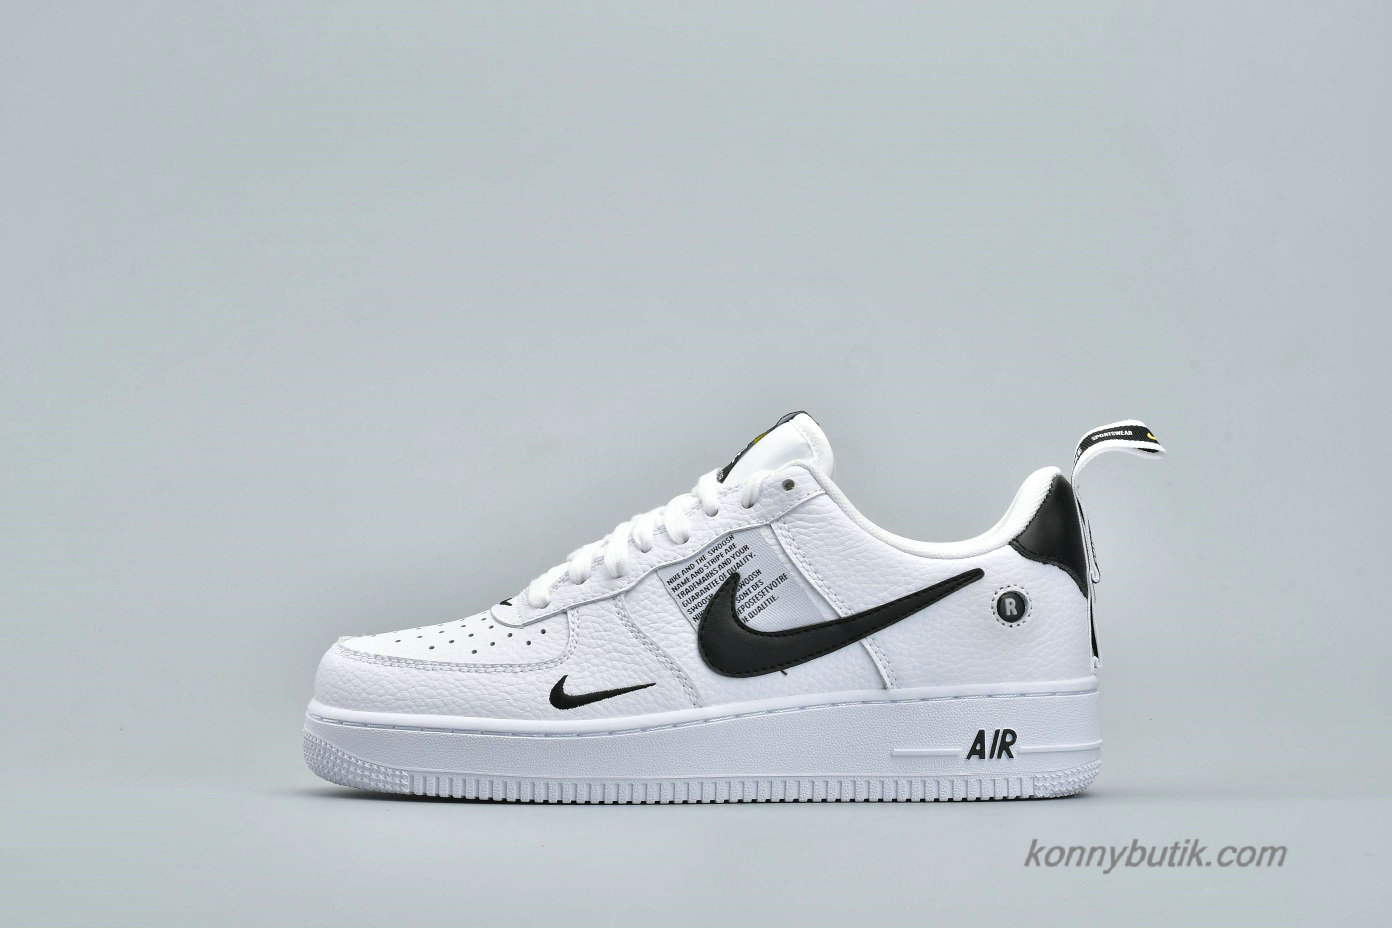 Nike Air Force 1 07 Low Unisex Sko Hvid / Sort (AJ7747-100)